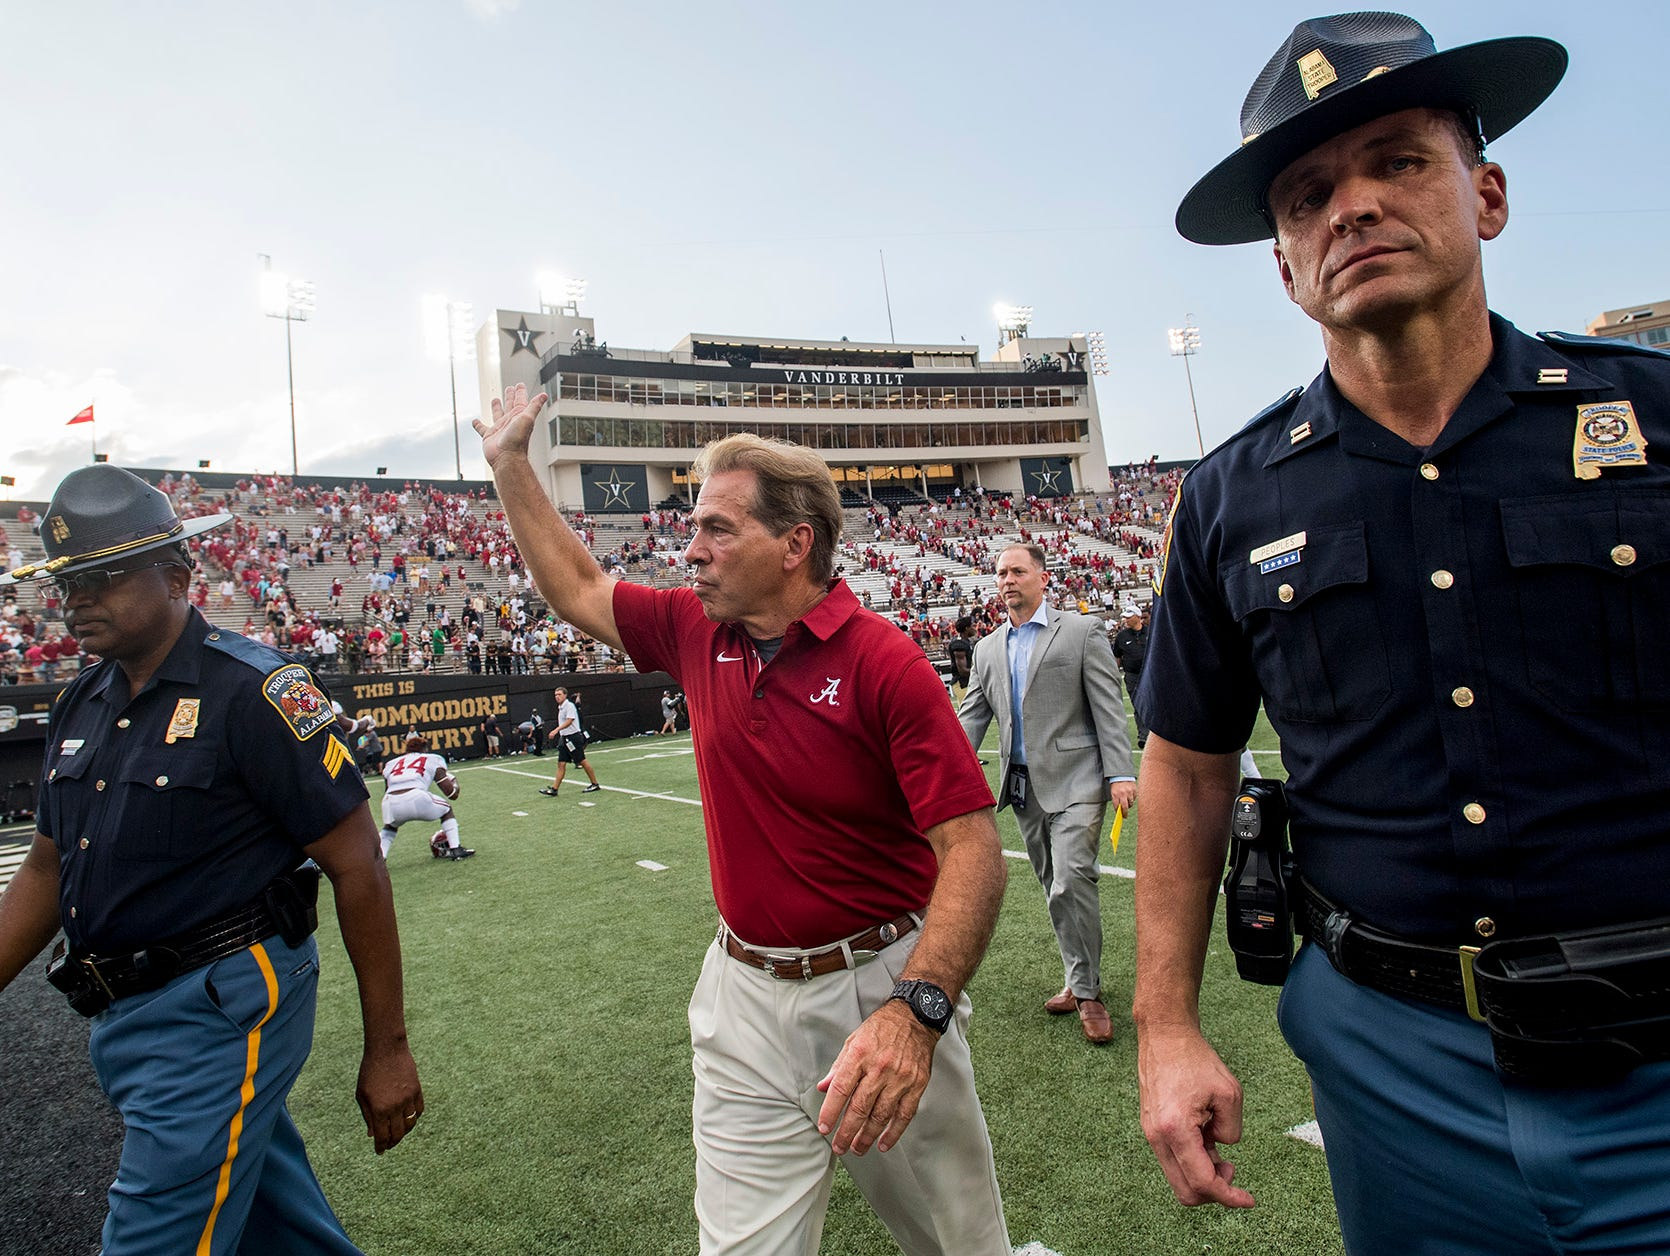 Alabama head coach Nick Saban waves as he leave the field after defeating Vanderbilt at Vanderbilt Stadium in Nashville, Tenn. on Saturday September 23, 2017. (Mickey Welsh / Montgomery Advertiser)